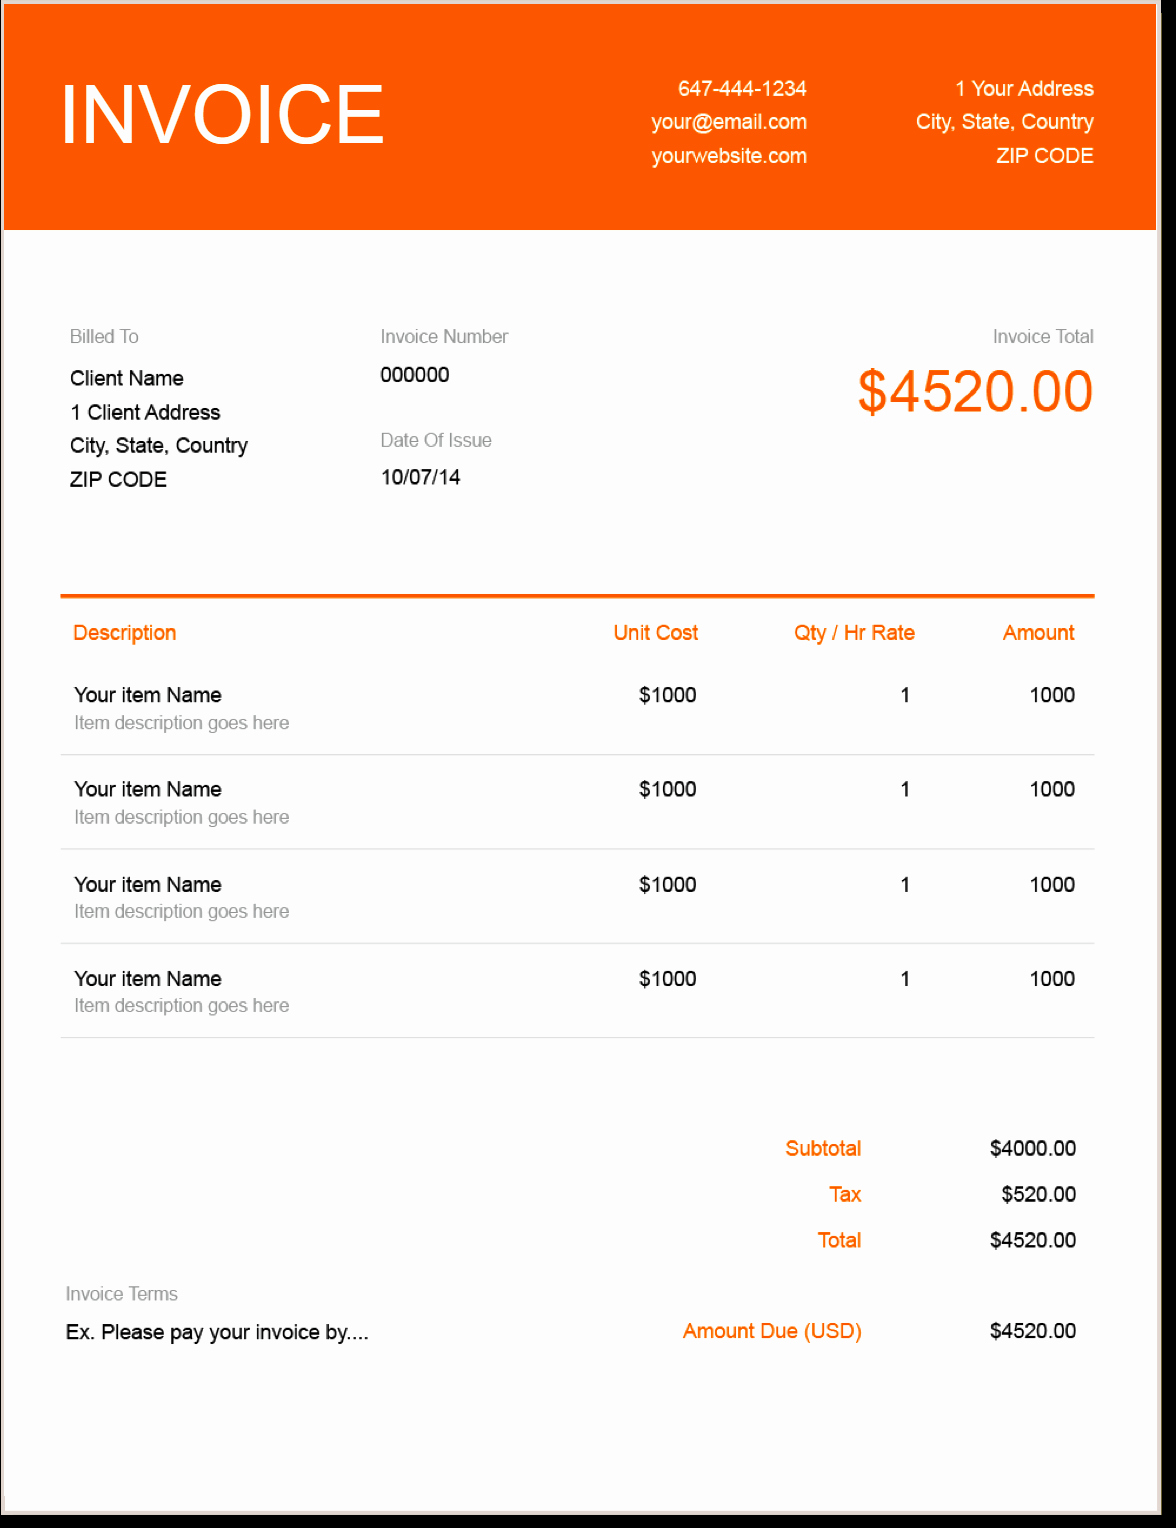 Tree Trimming Estimate Template Luxury Invoice Template Send In Minutes